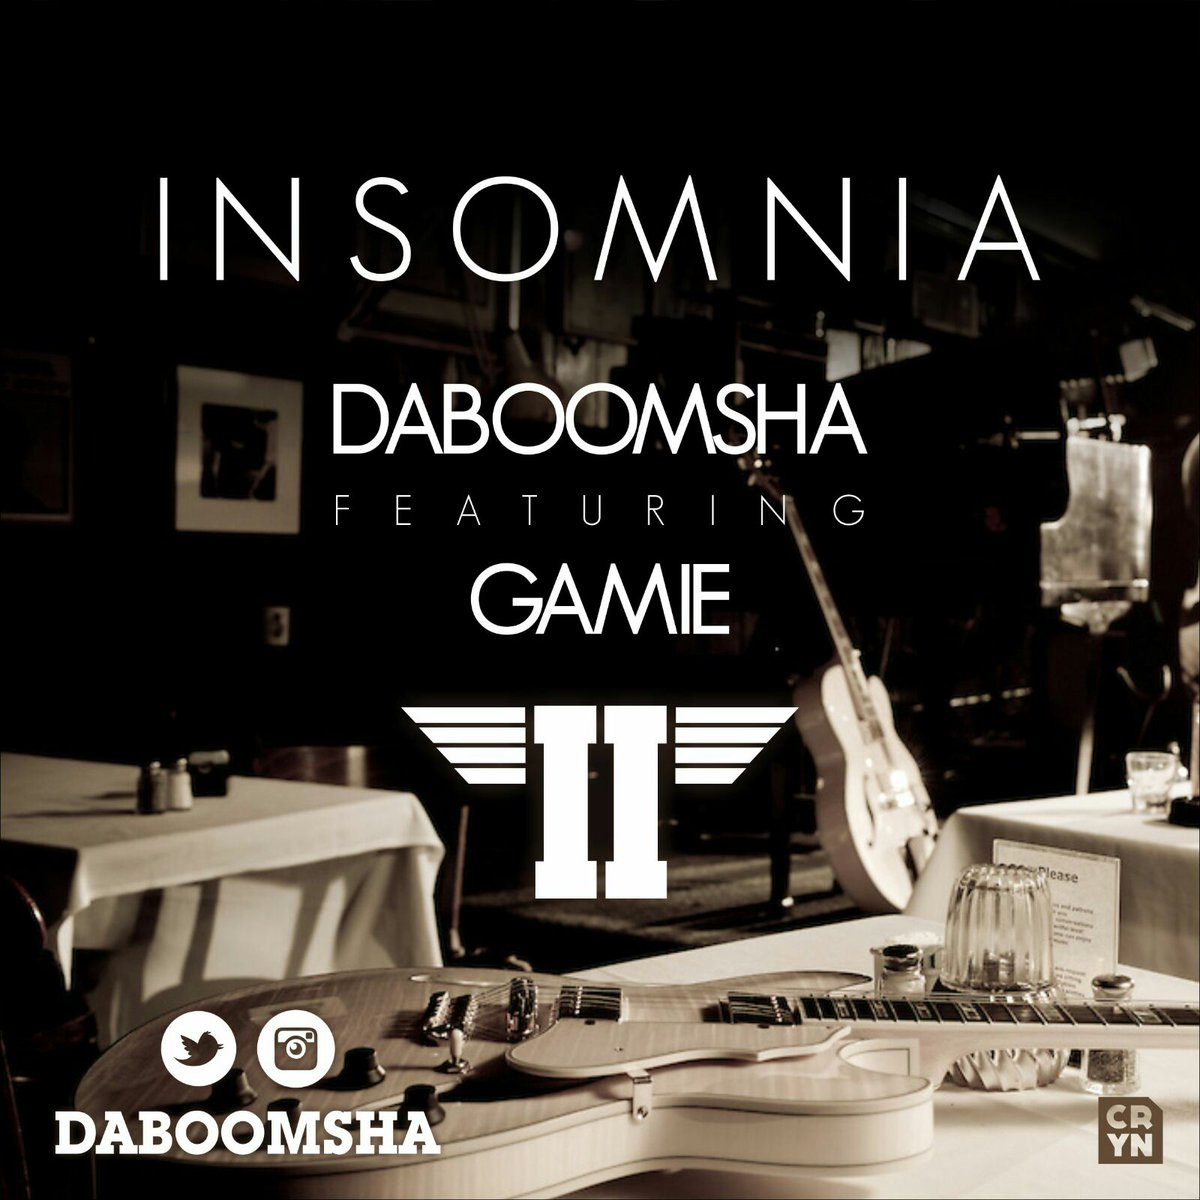 We're talkin' real Hip-hop! @Daboomsha drops Insomnia Feat @ItsGAMiE - https://t.co/NfMU5i0eiJ https://t.co/polQ2O7wsr